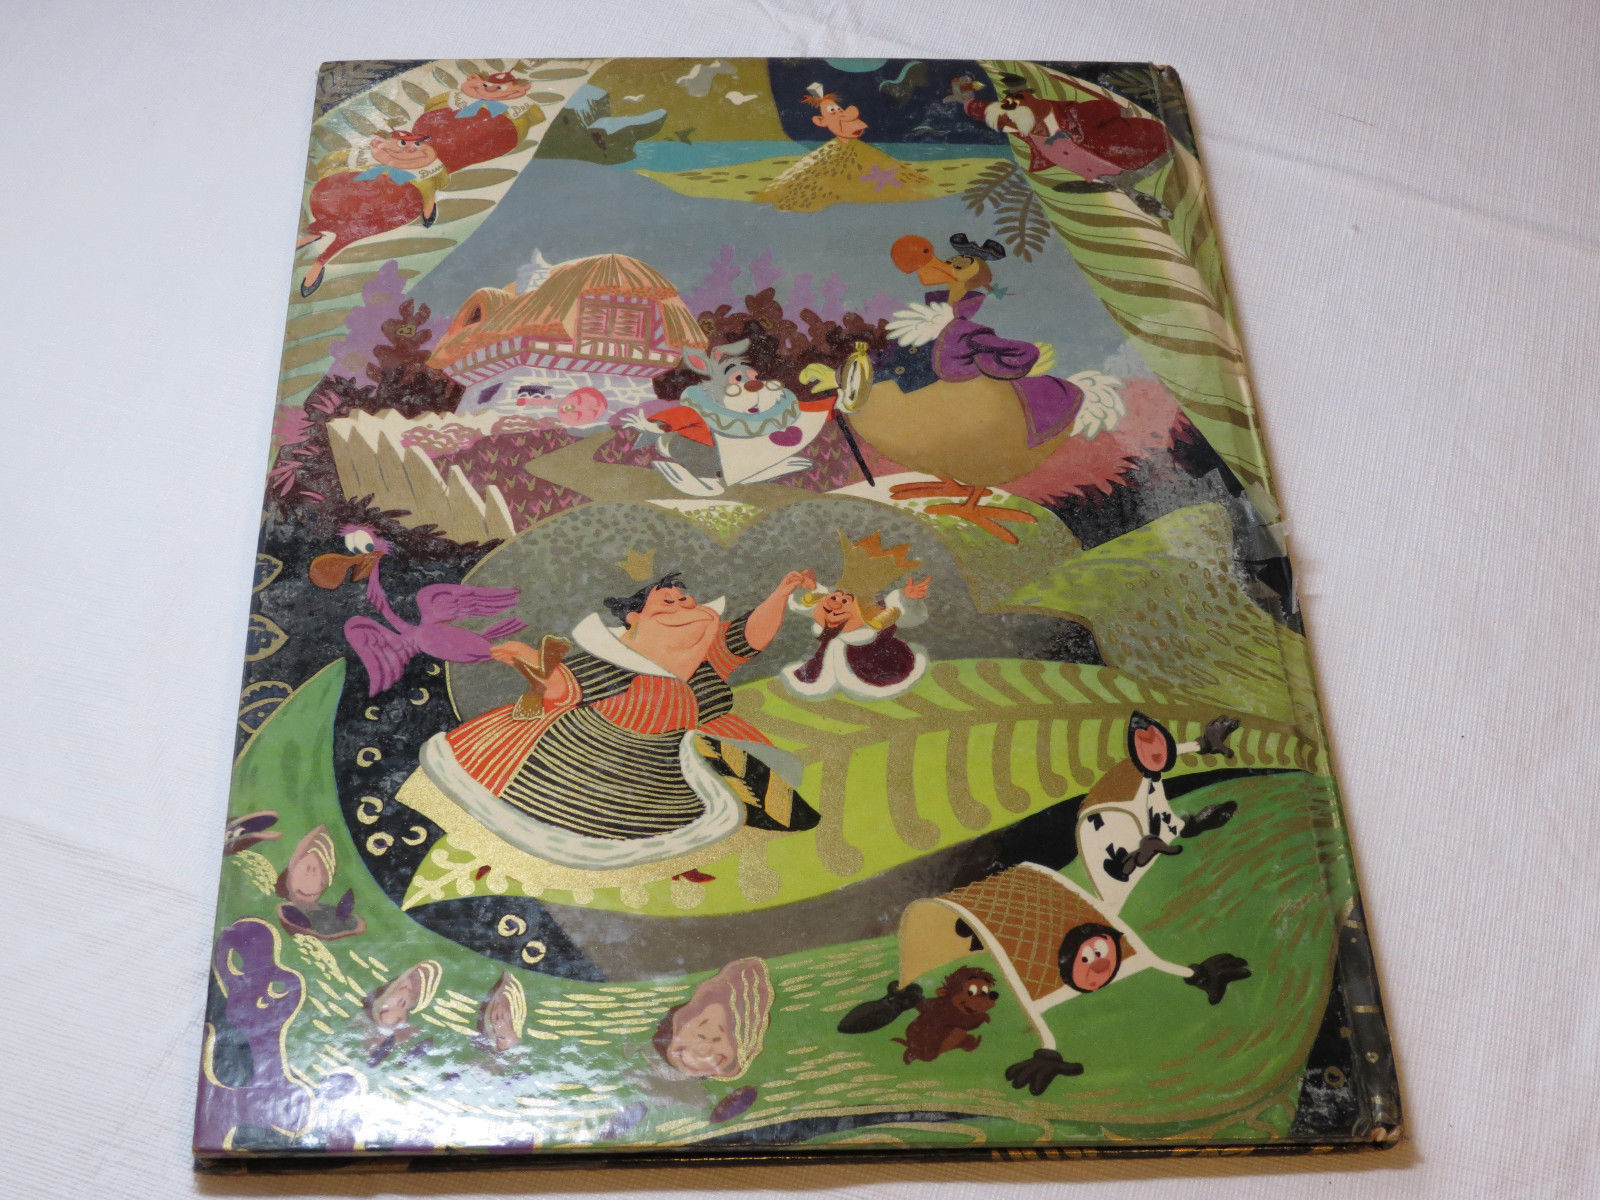 Walt Disneys Alice in Wonderland 1951 book Big Golden Hardcover Vintage